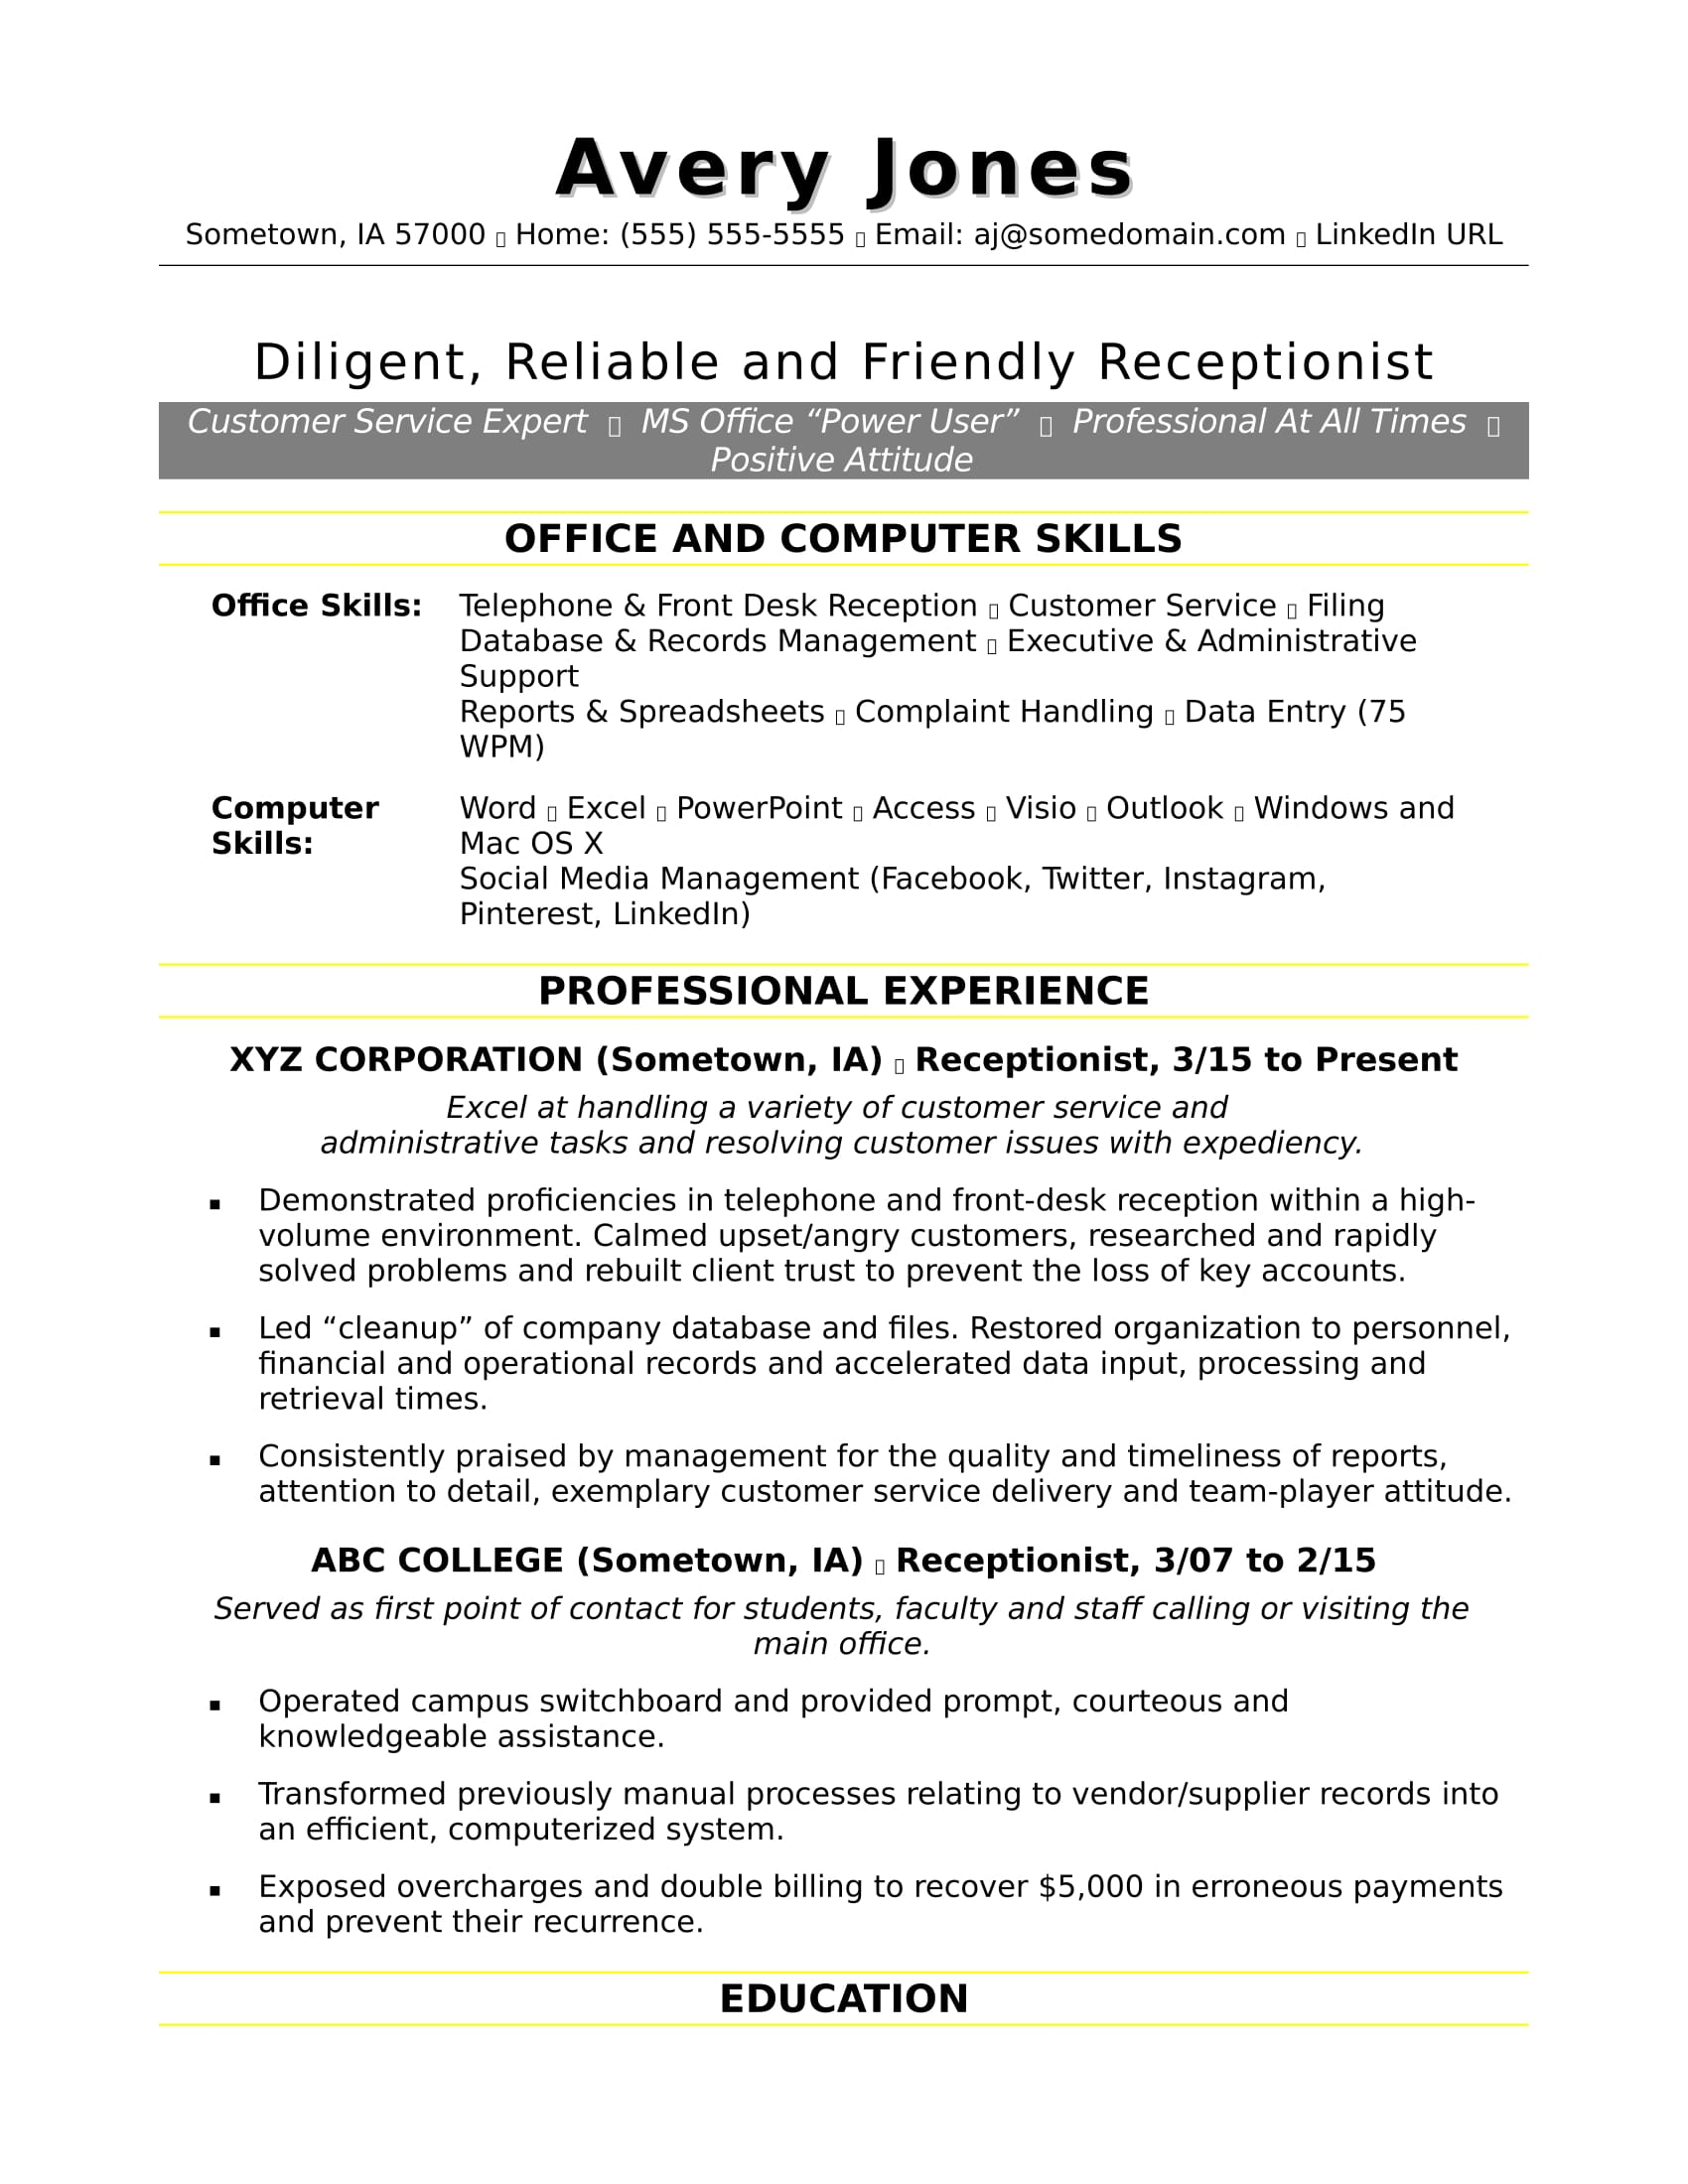 Sample Resume For A Receptionist  Social Media Resume Examples